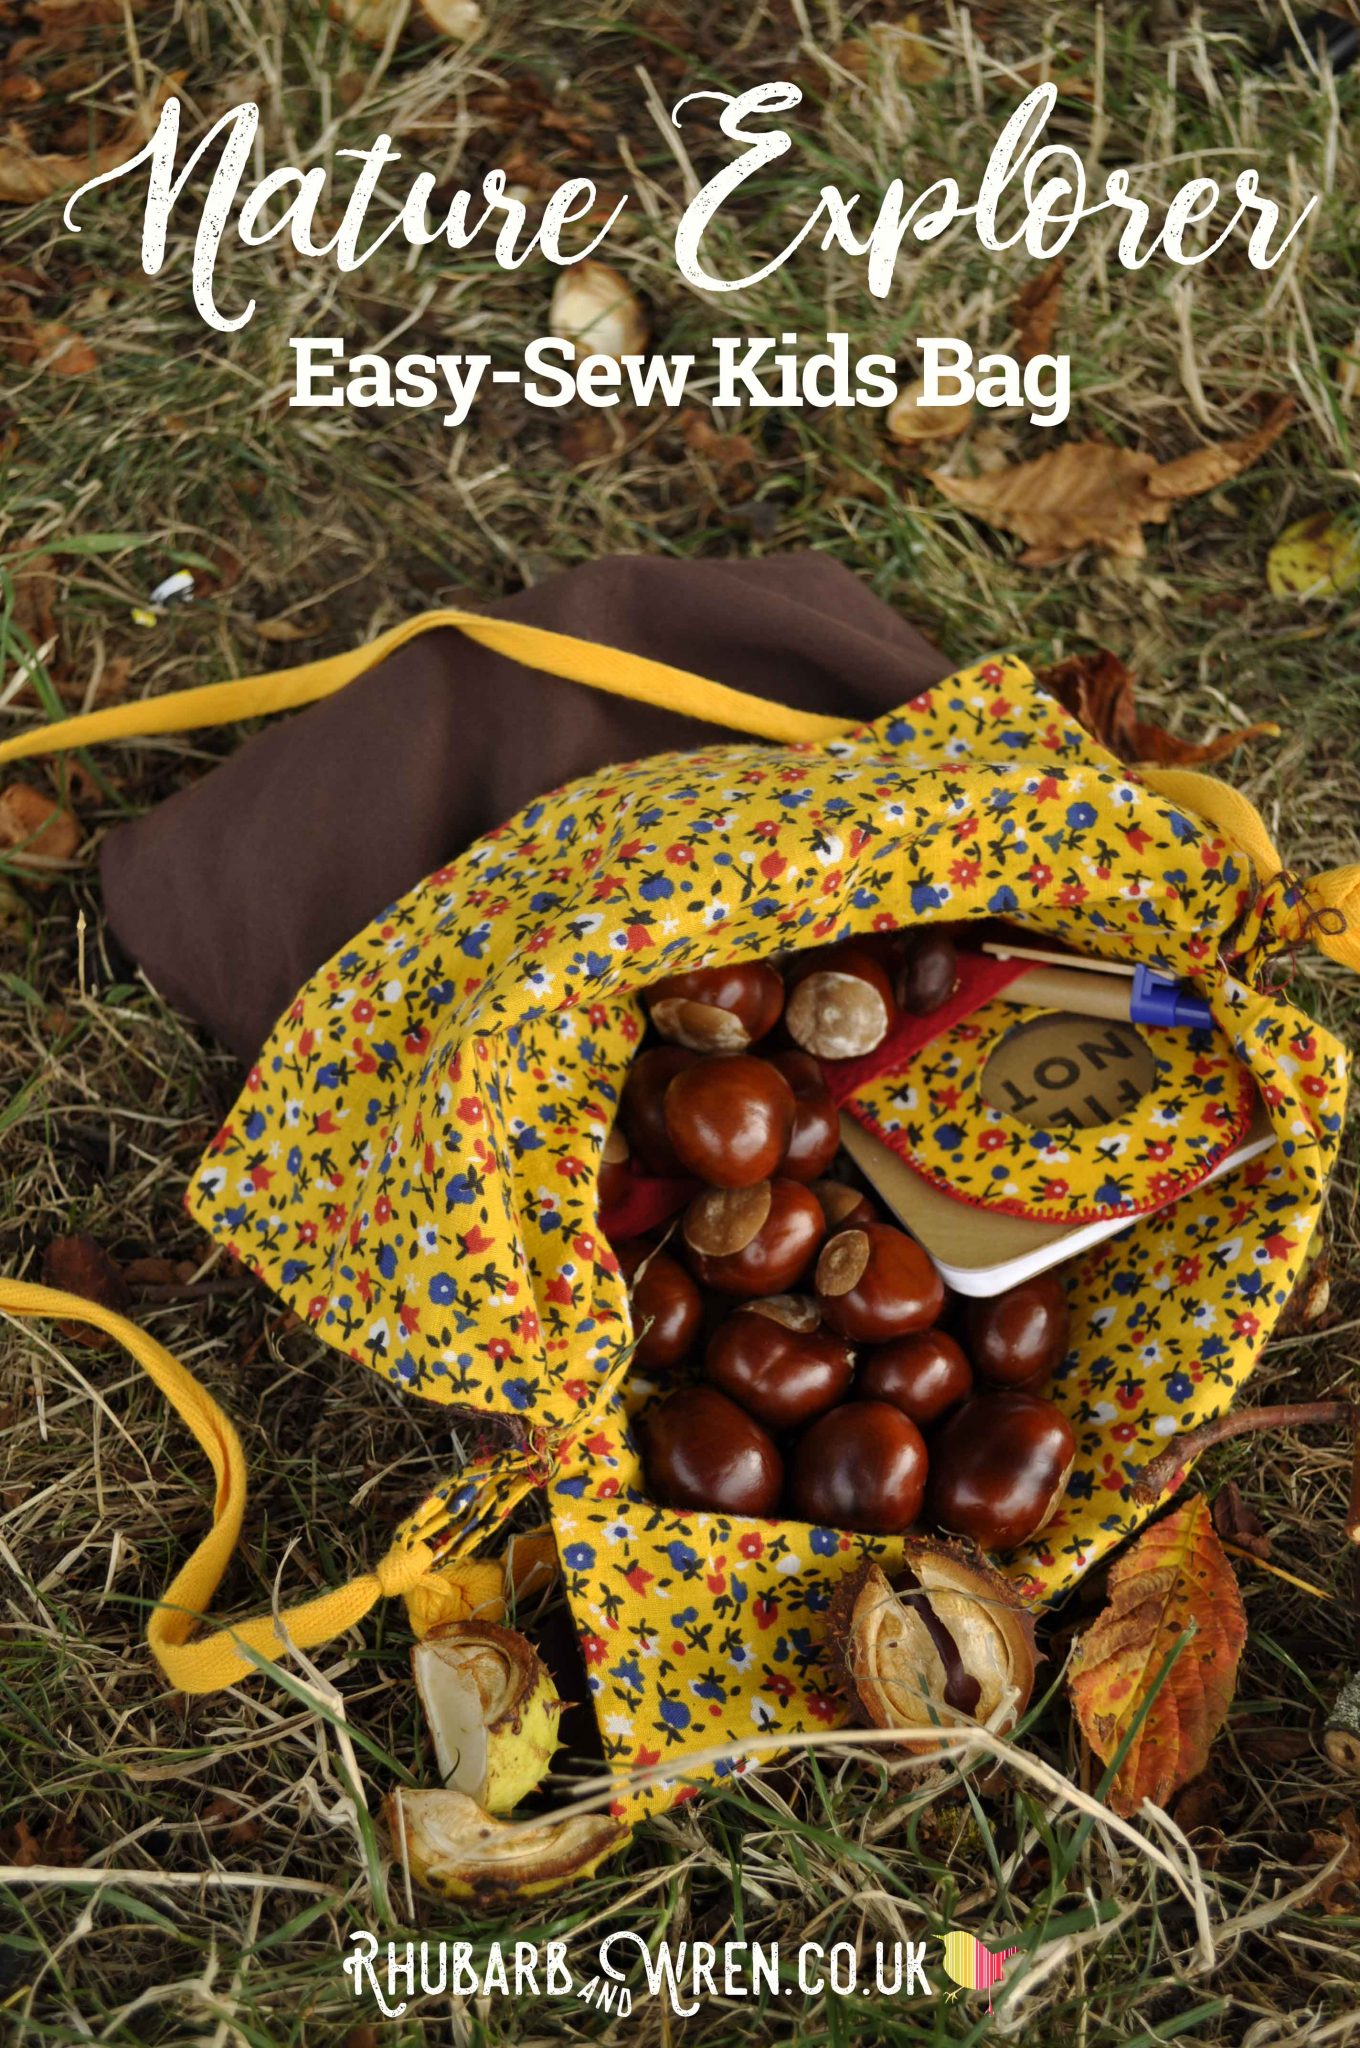 Homemade kids nature explorer bag, full of conkers